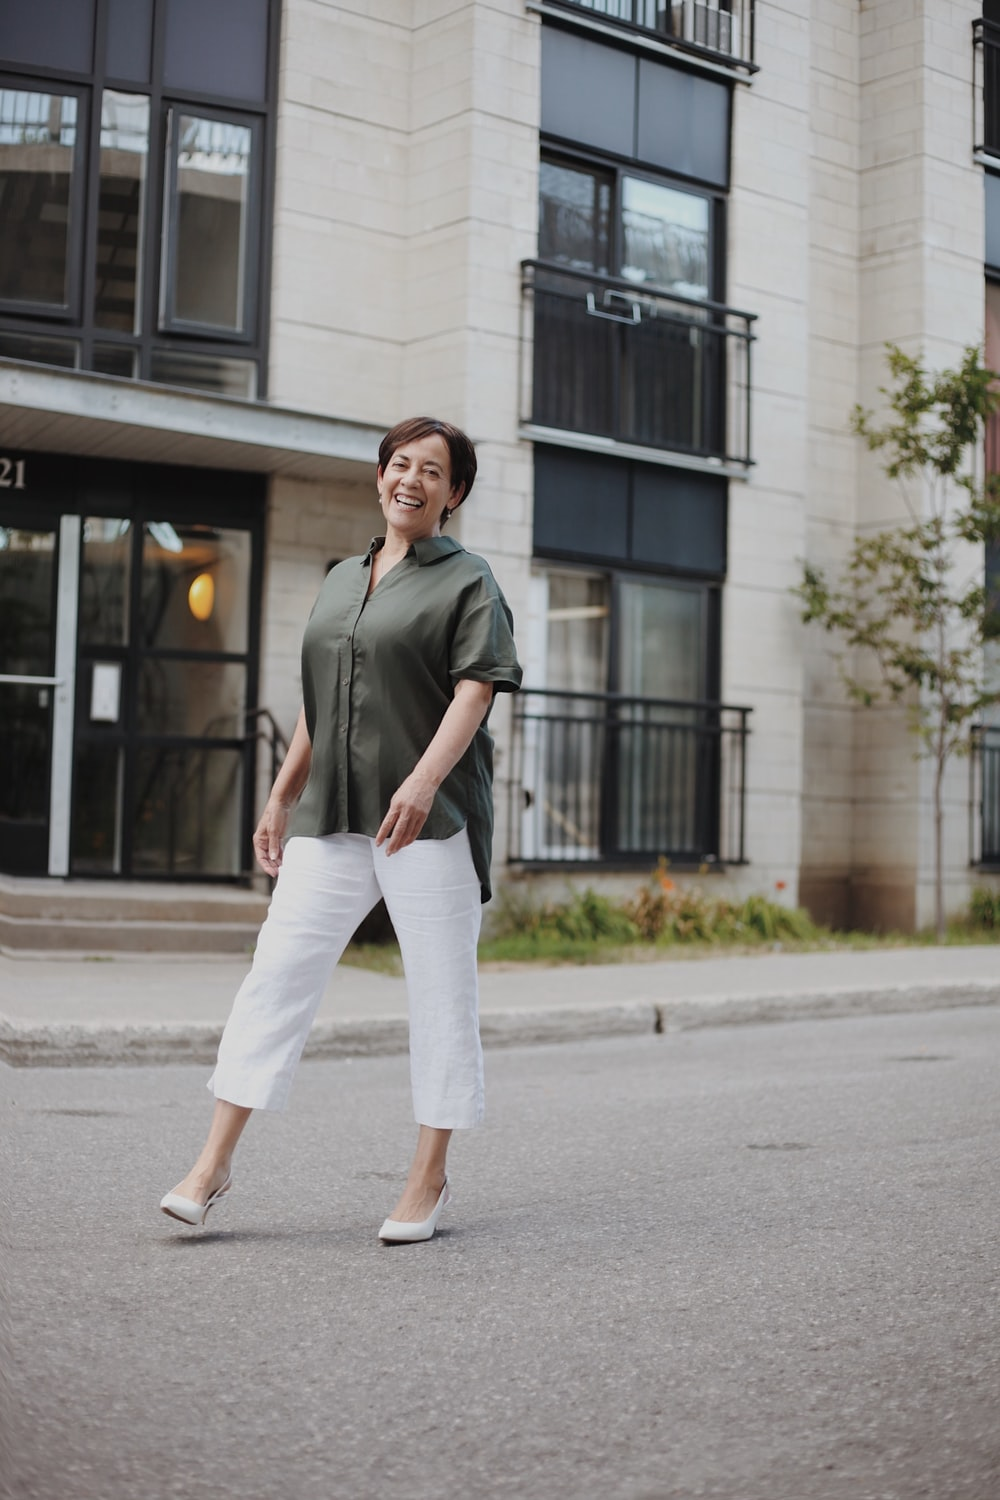 man in green button up shirt and white pants standing on sidewalk during daytime